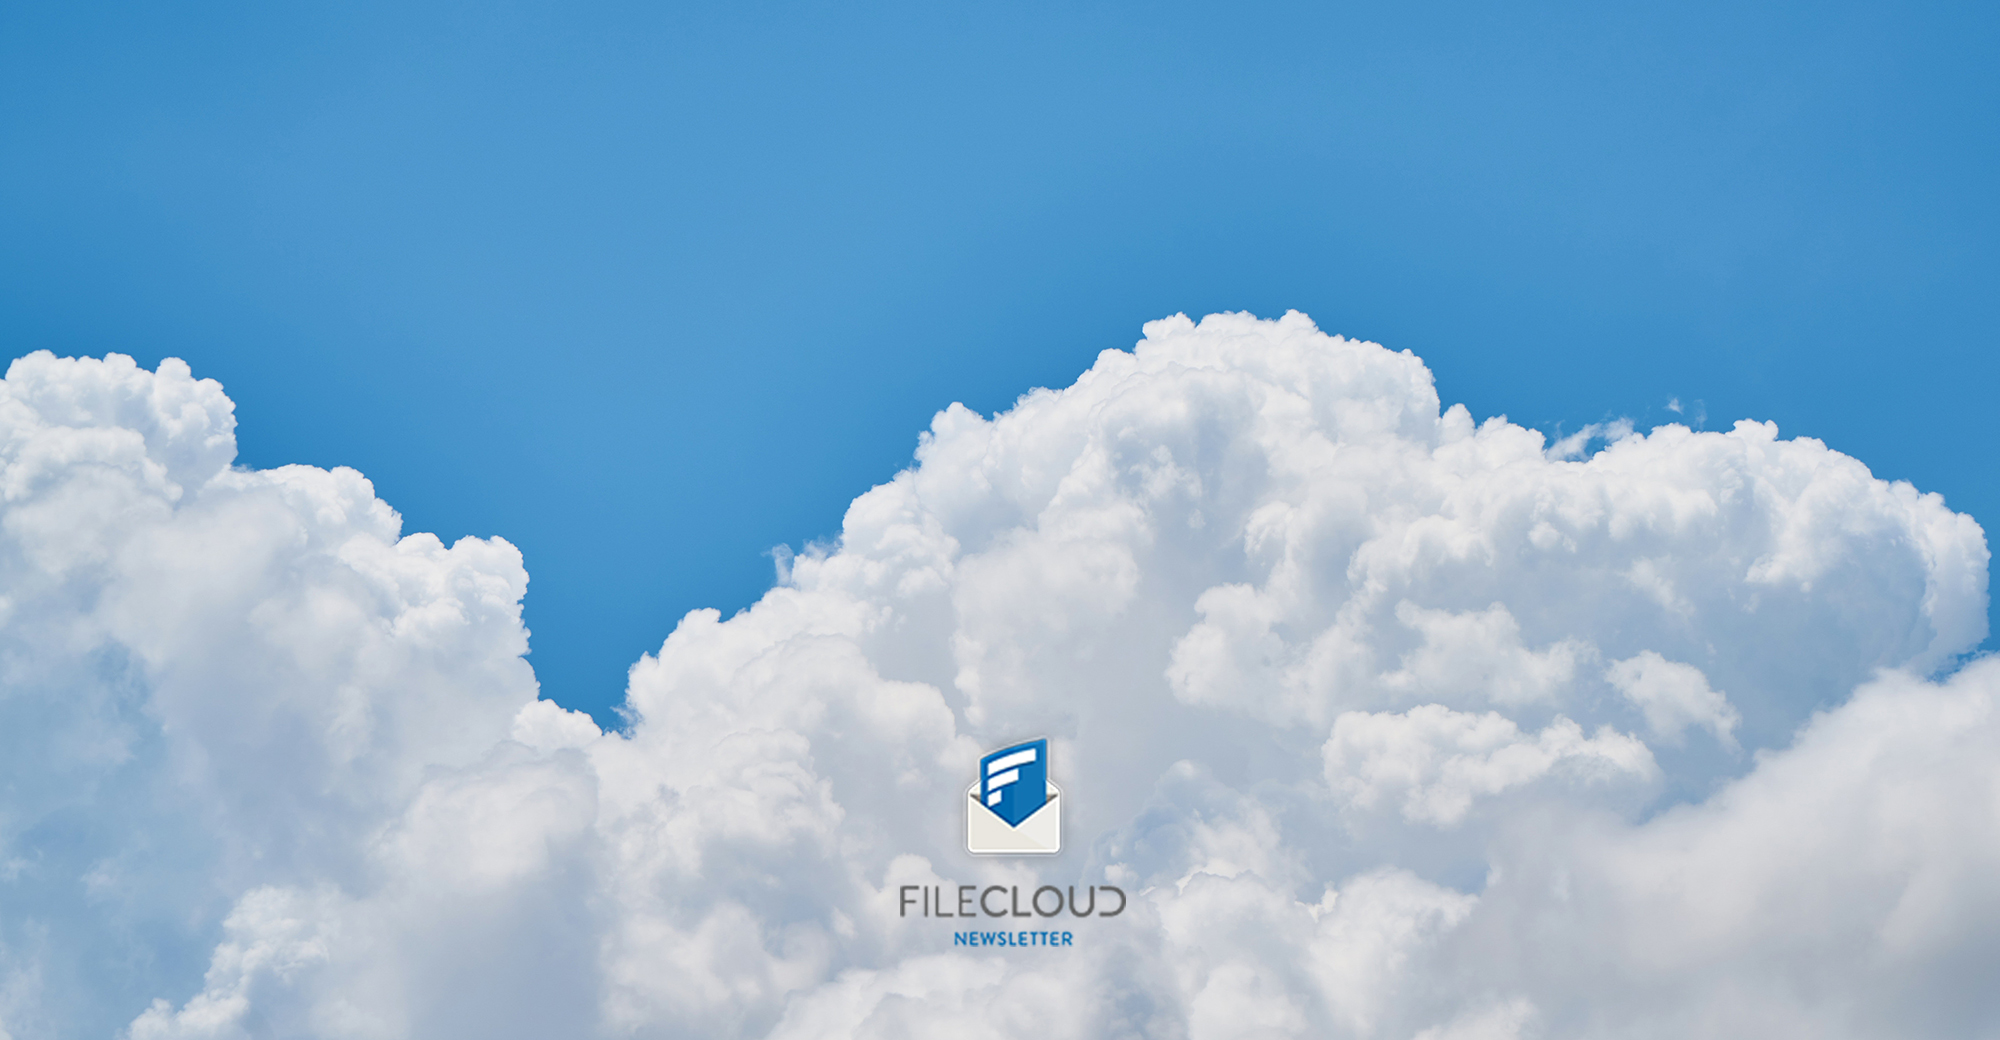 FileCloud Newsletter